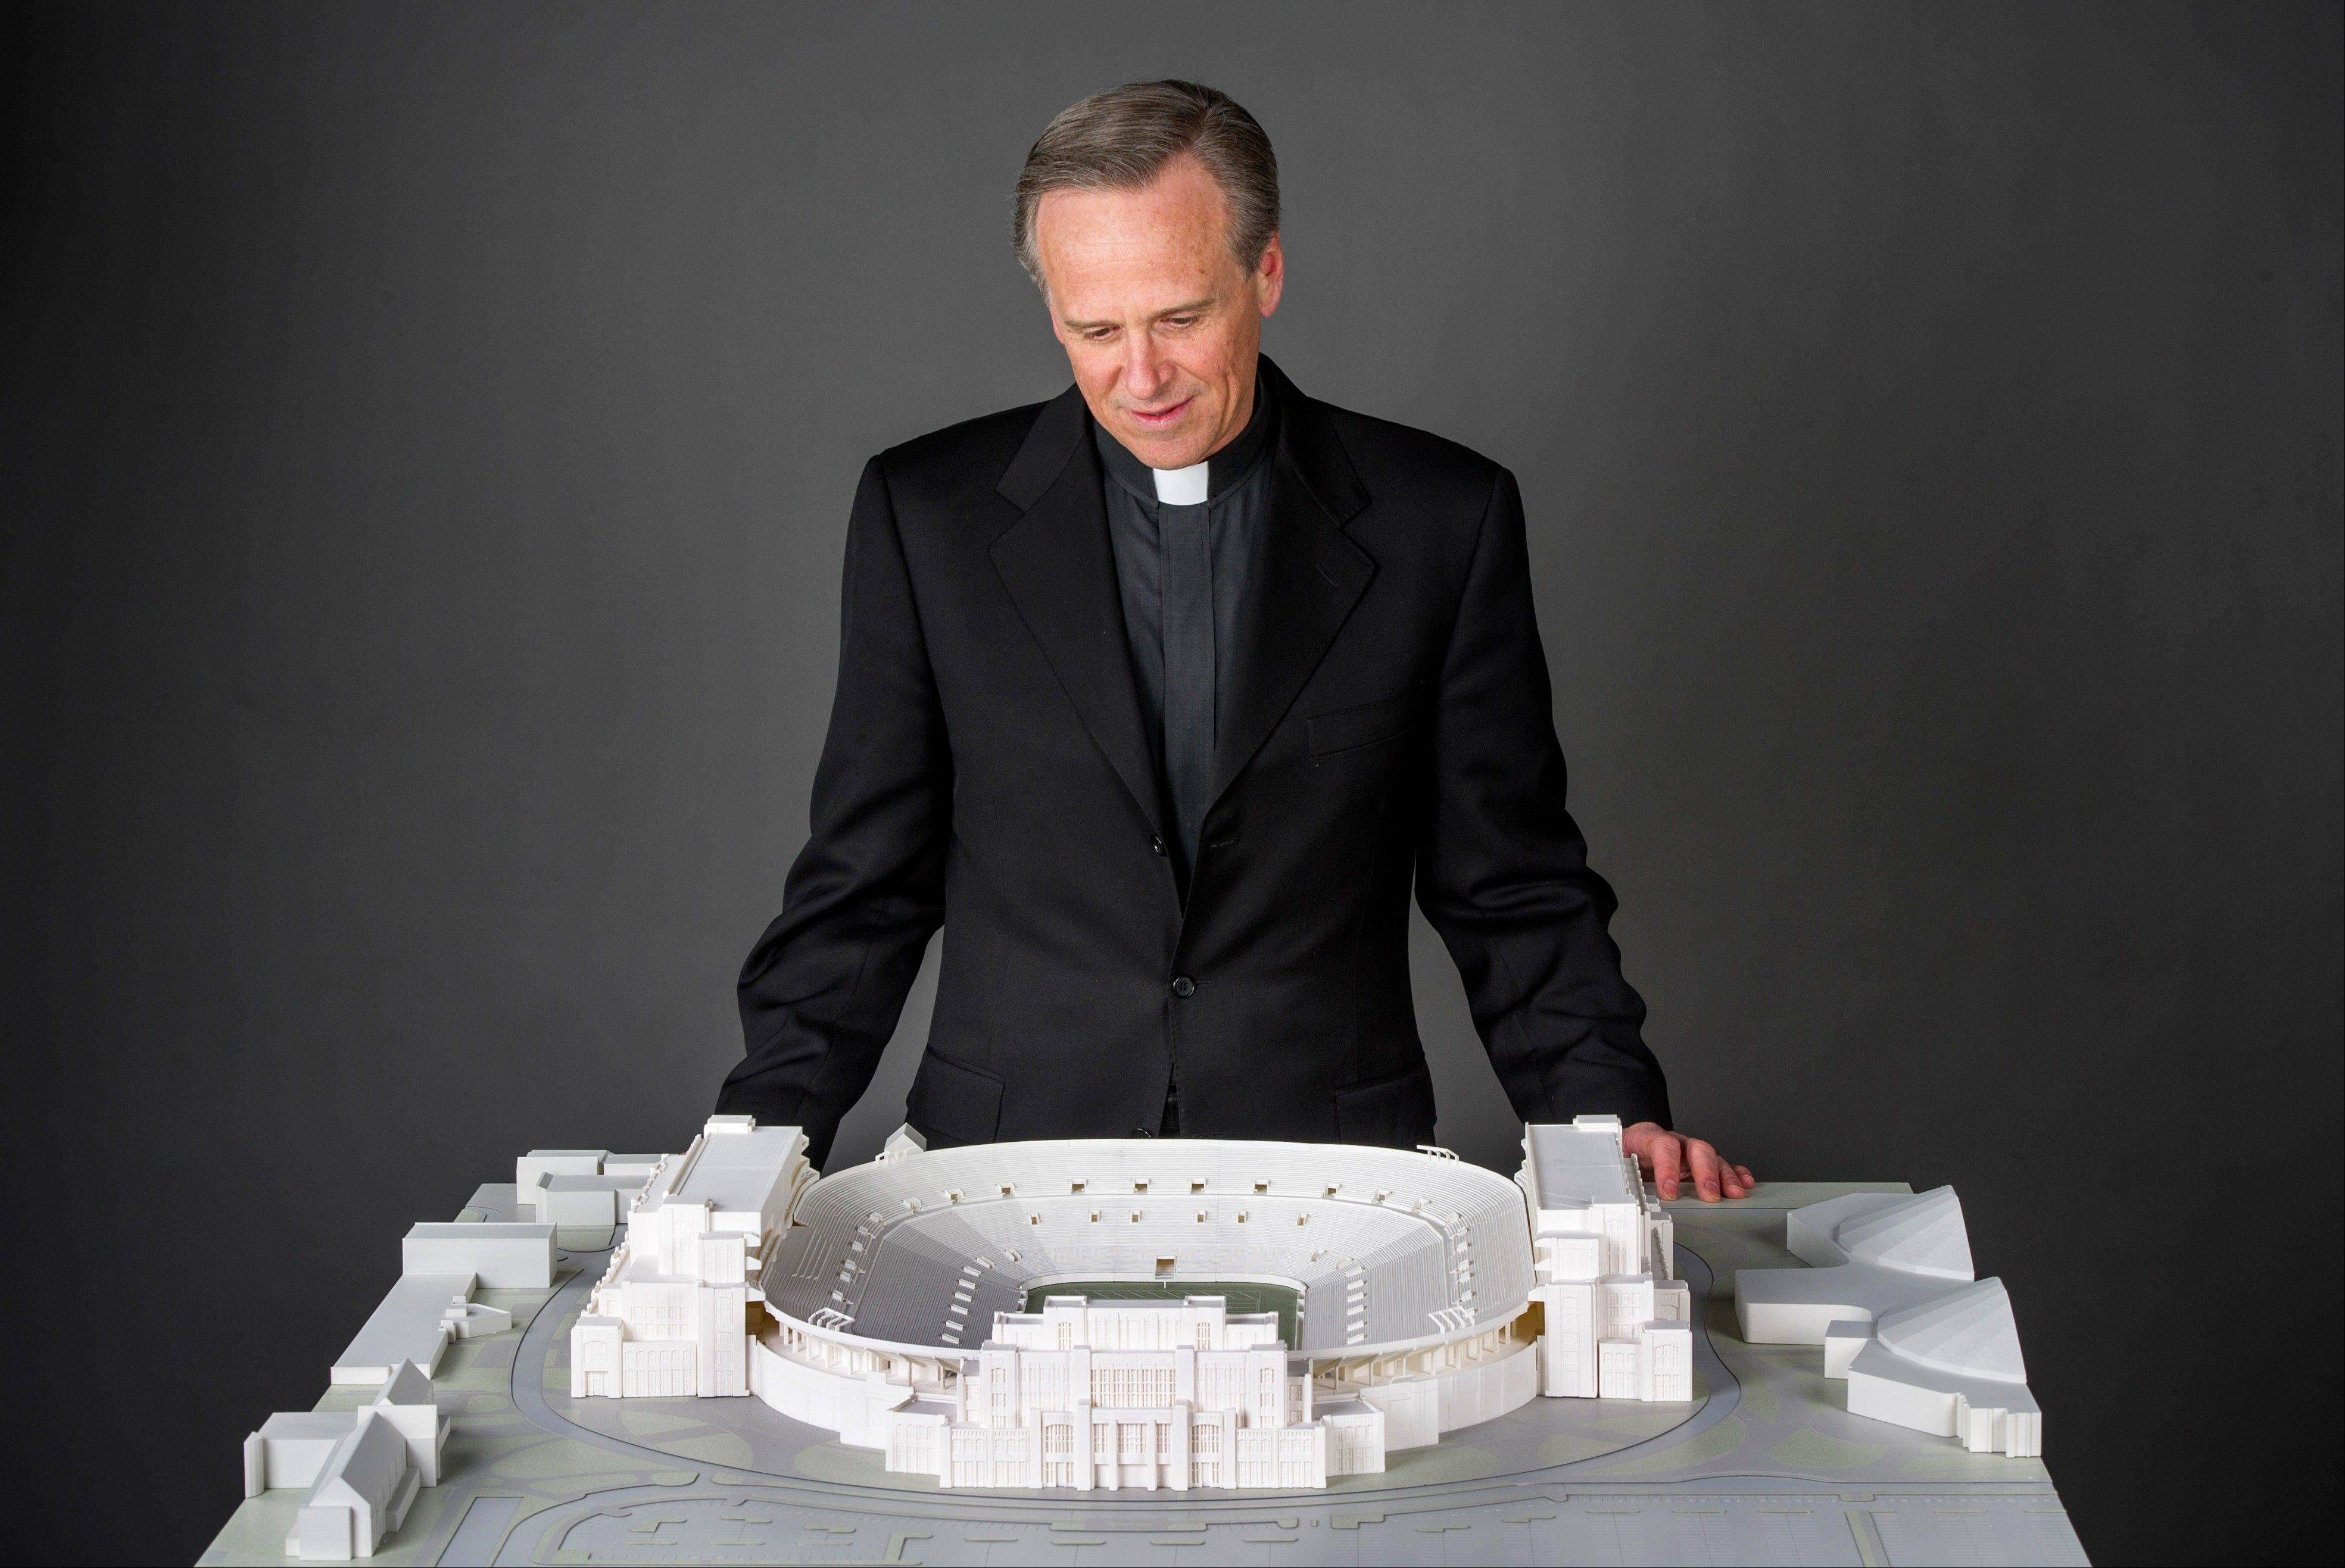 In this Jan. 19, 2014 photo University of Notre Dame president, Rev. John I. Jenkins, C.S.C., looks at a model of the school's new football stadium. Notre Dame announced plans Wednesday, Jan. 29, 2014 to expand the schoolís 84-year-old football stadium, adding up to 4,000 premium seats and spending about $400 million to add buildings on three sides of the ìHouse that Rockne Built.î